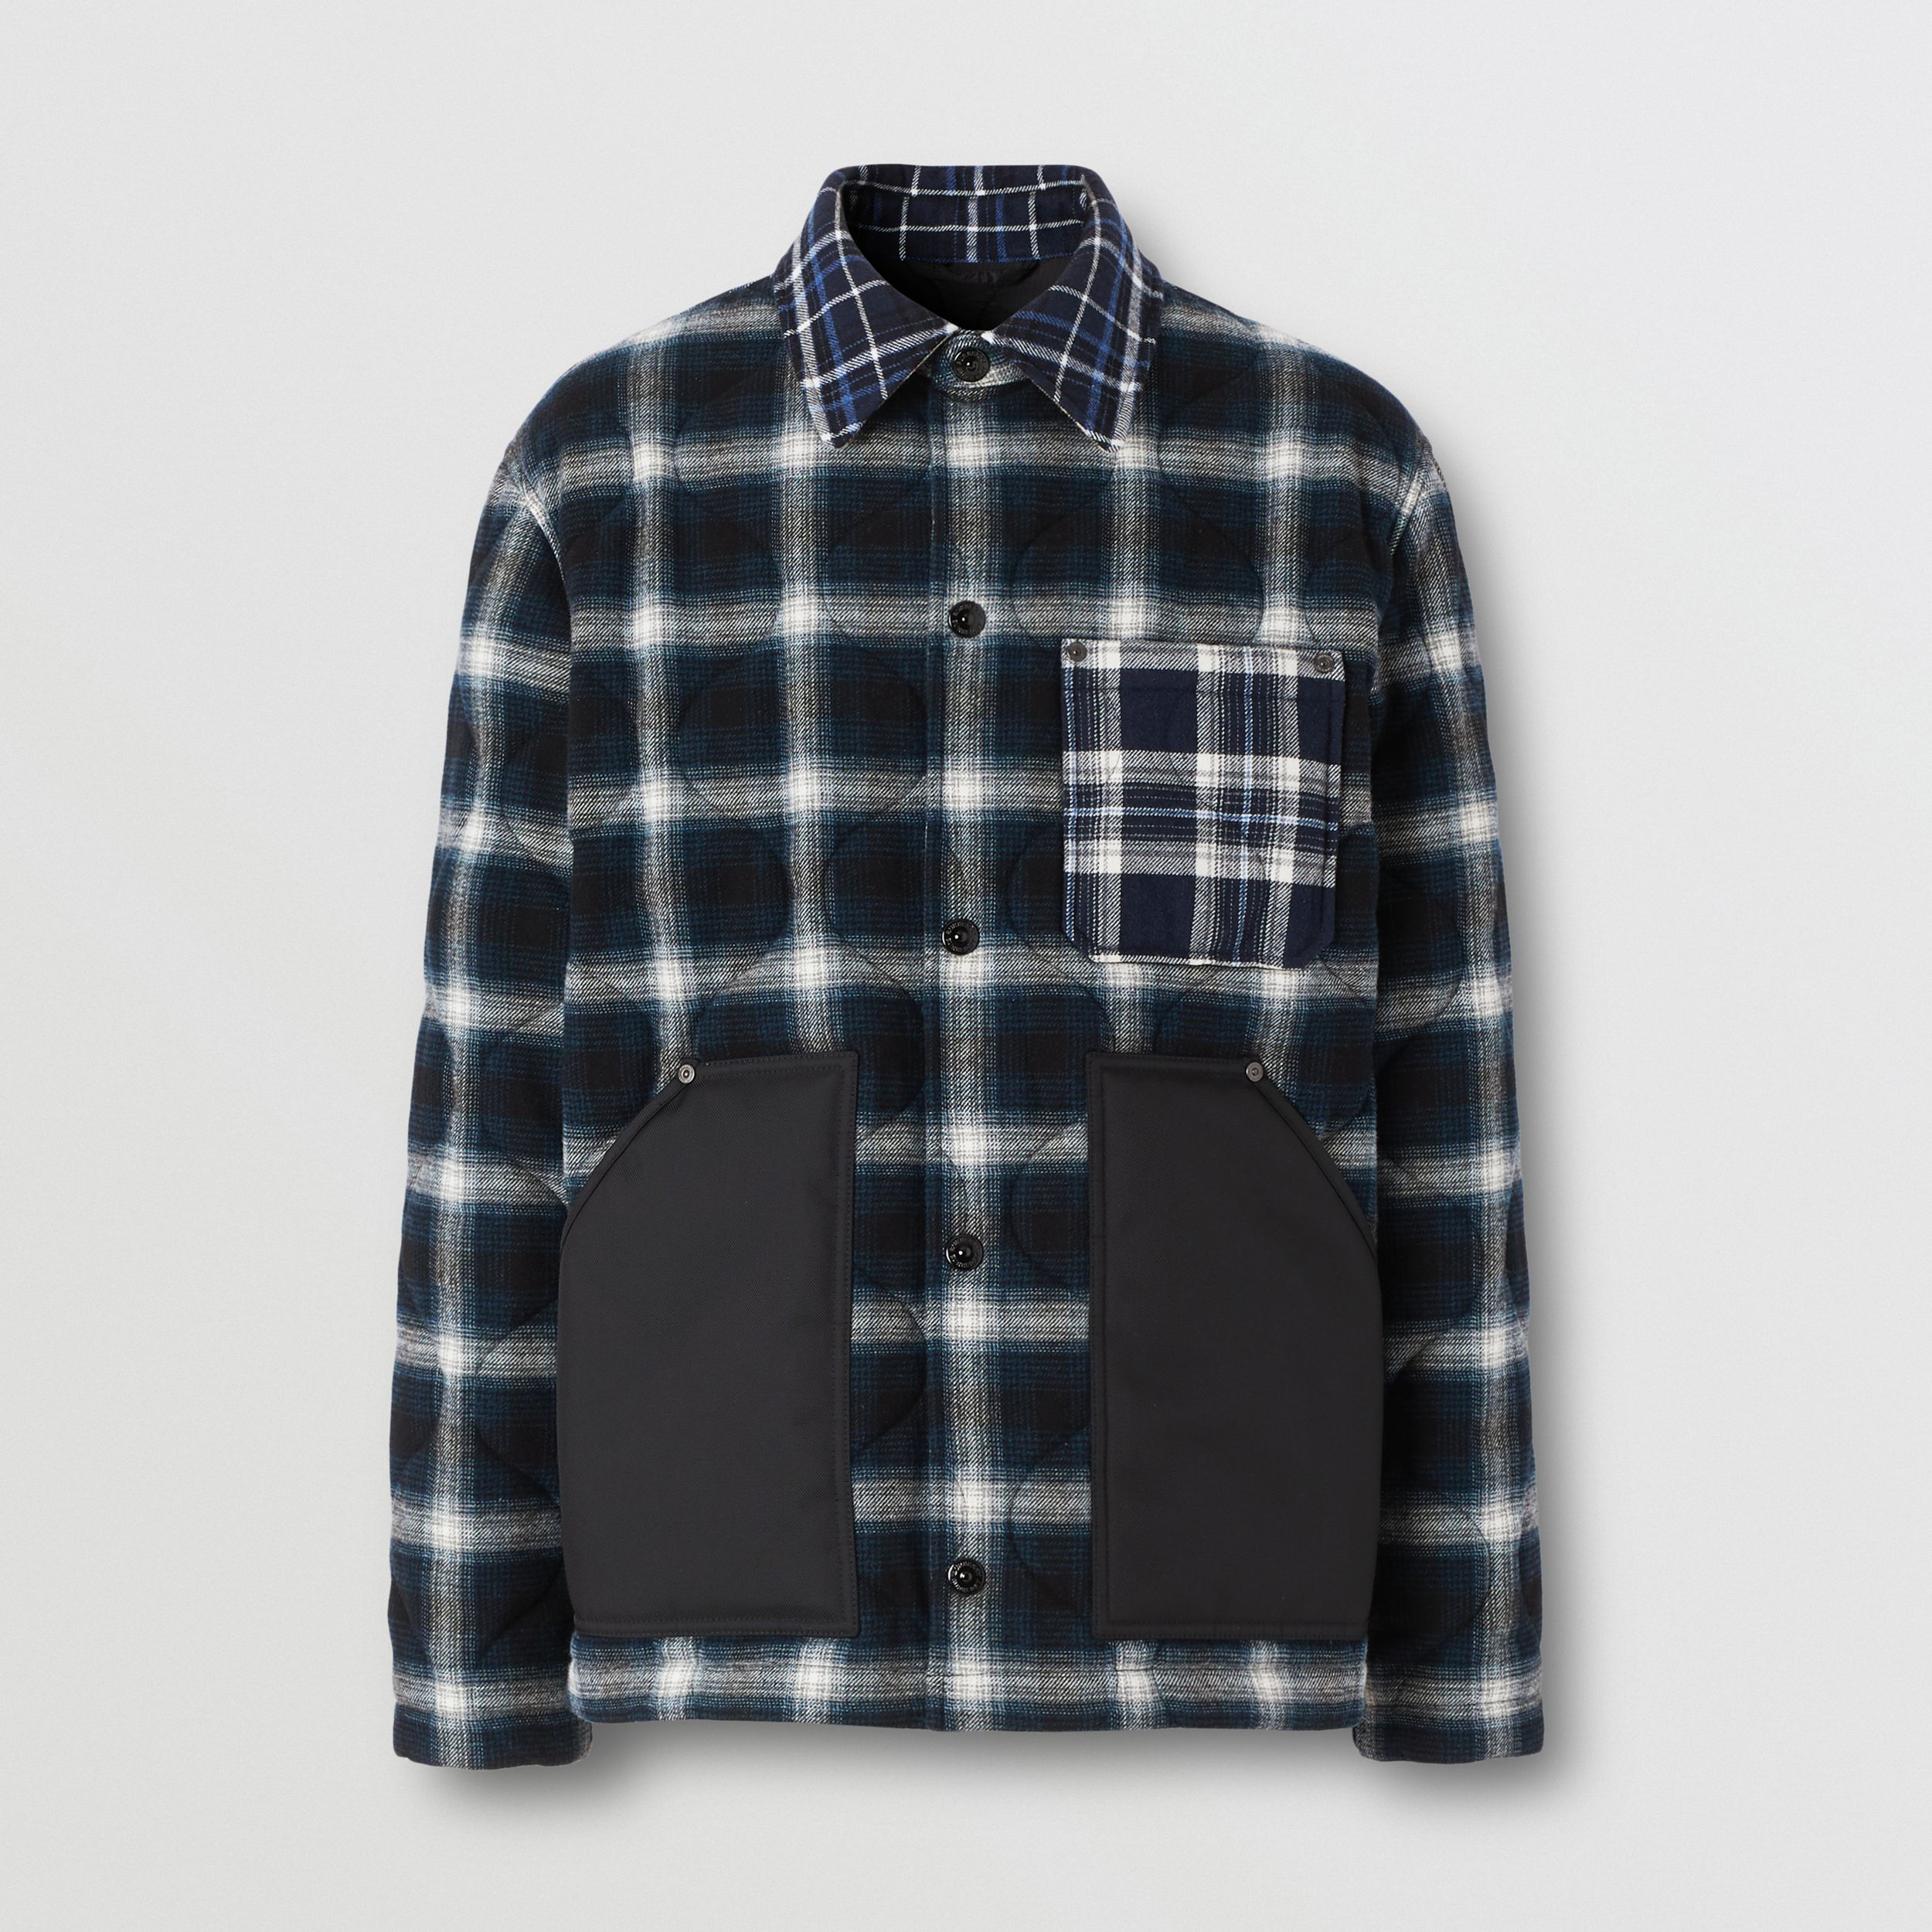 Contrast Pocket Check Wool Cotton Overshirt in Black - Men | Burberry - 4